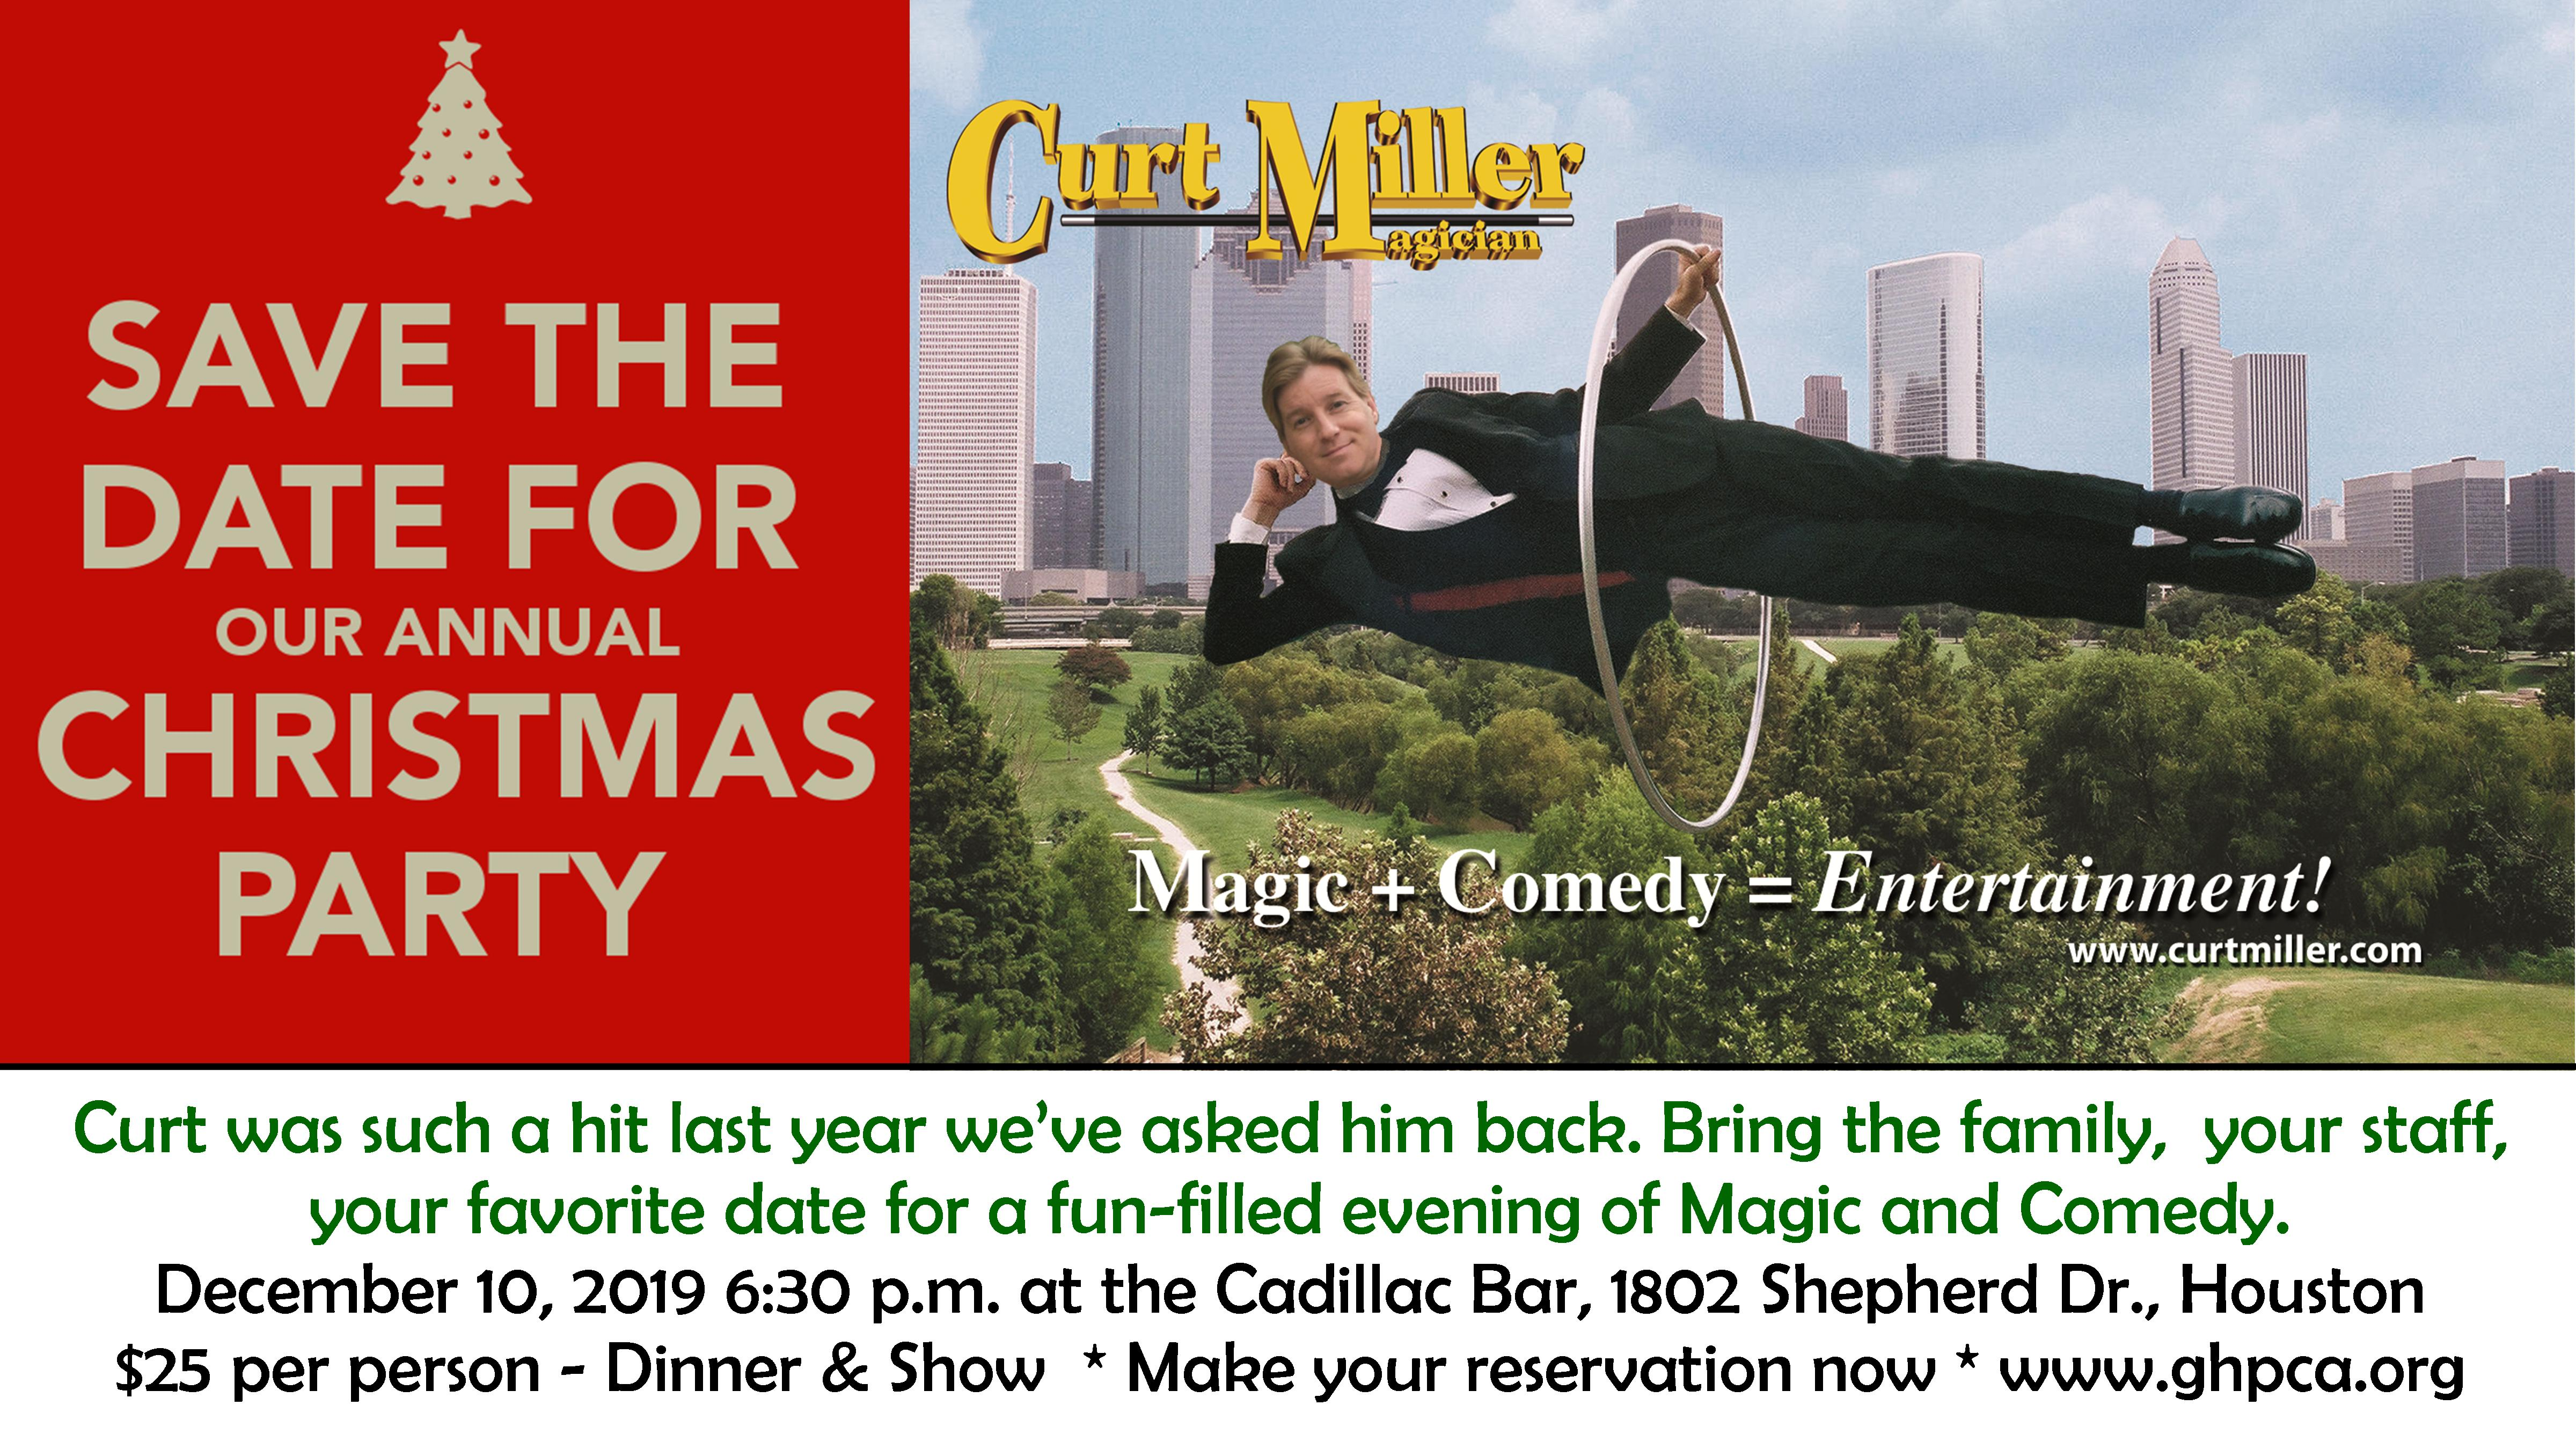 ChristmasParty2019Announcement